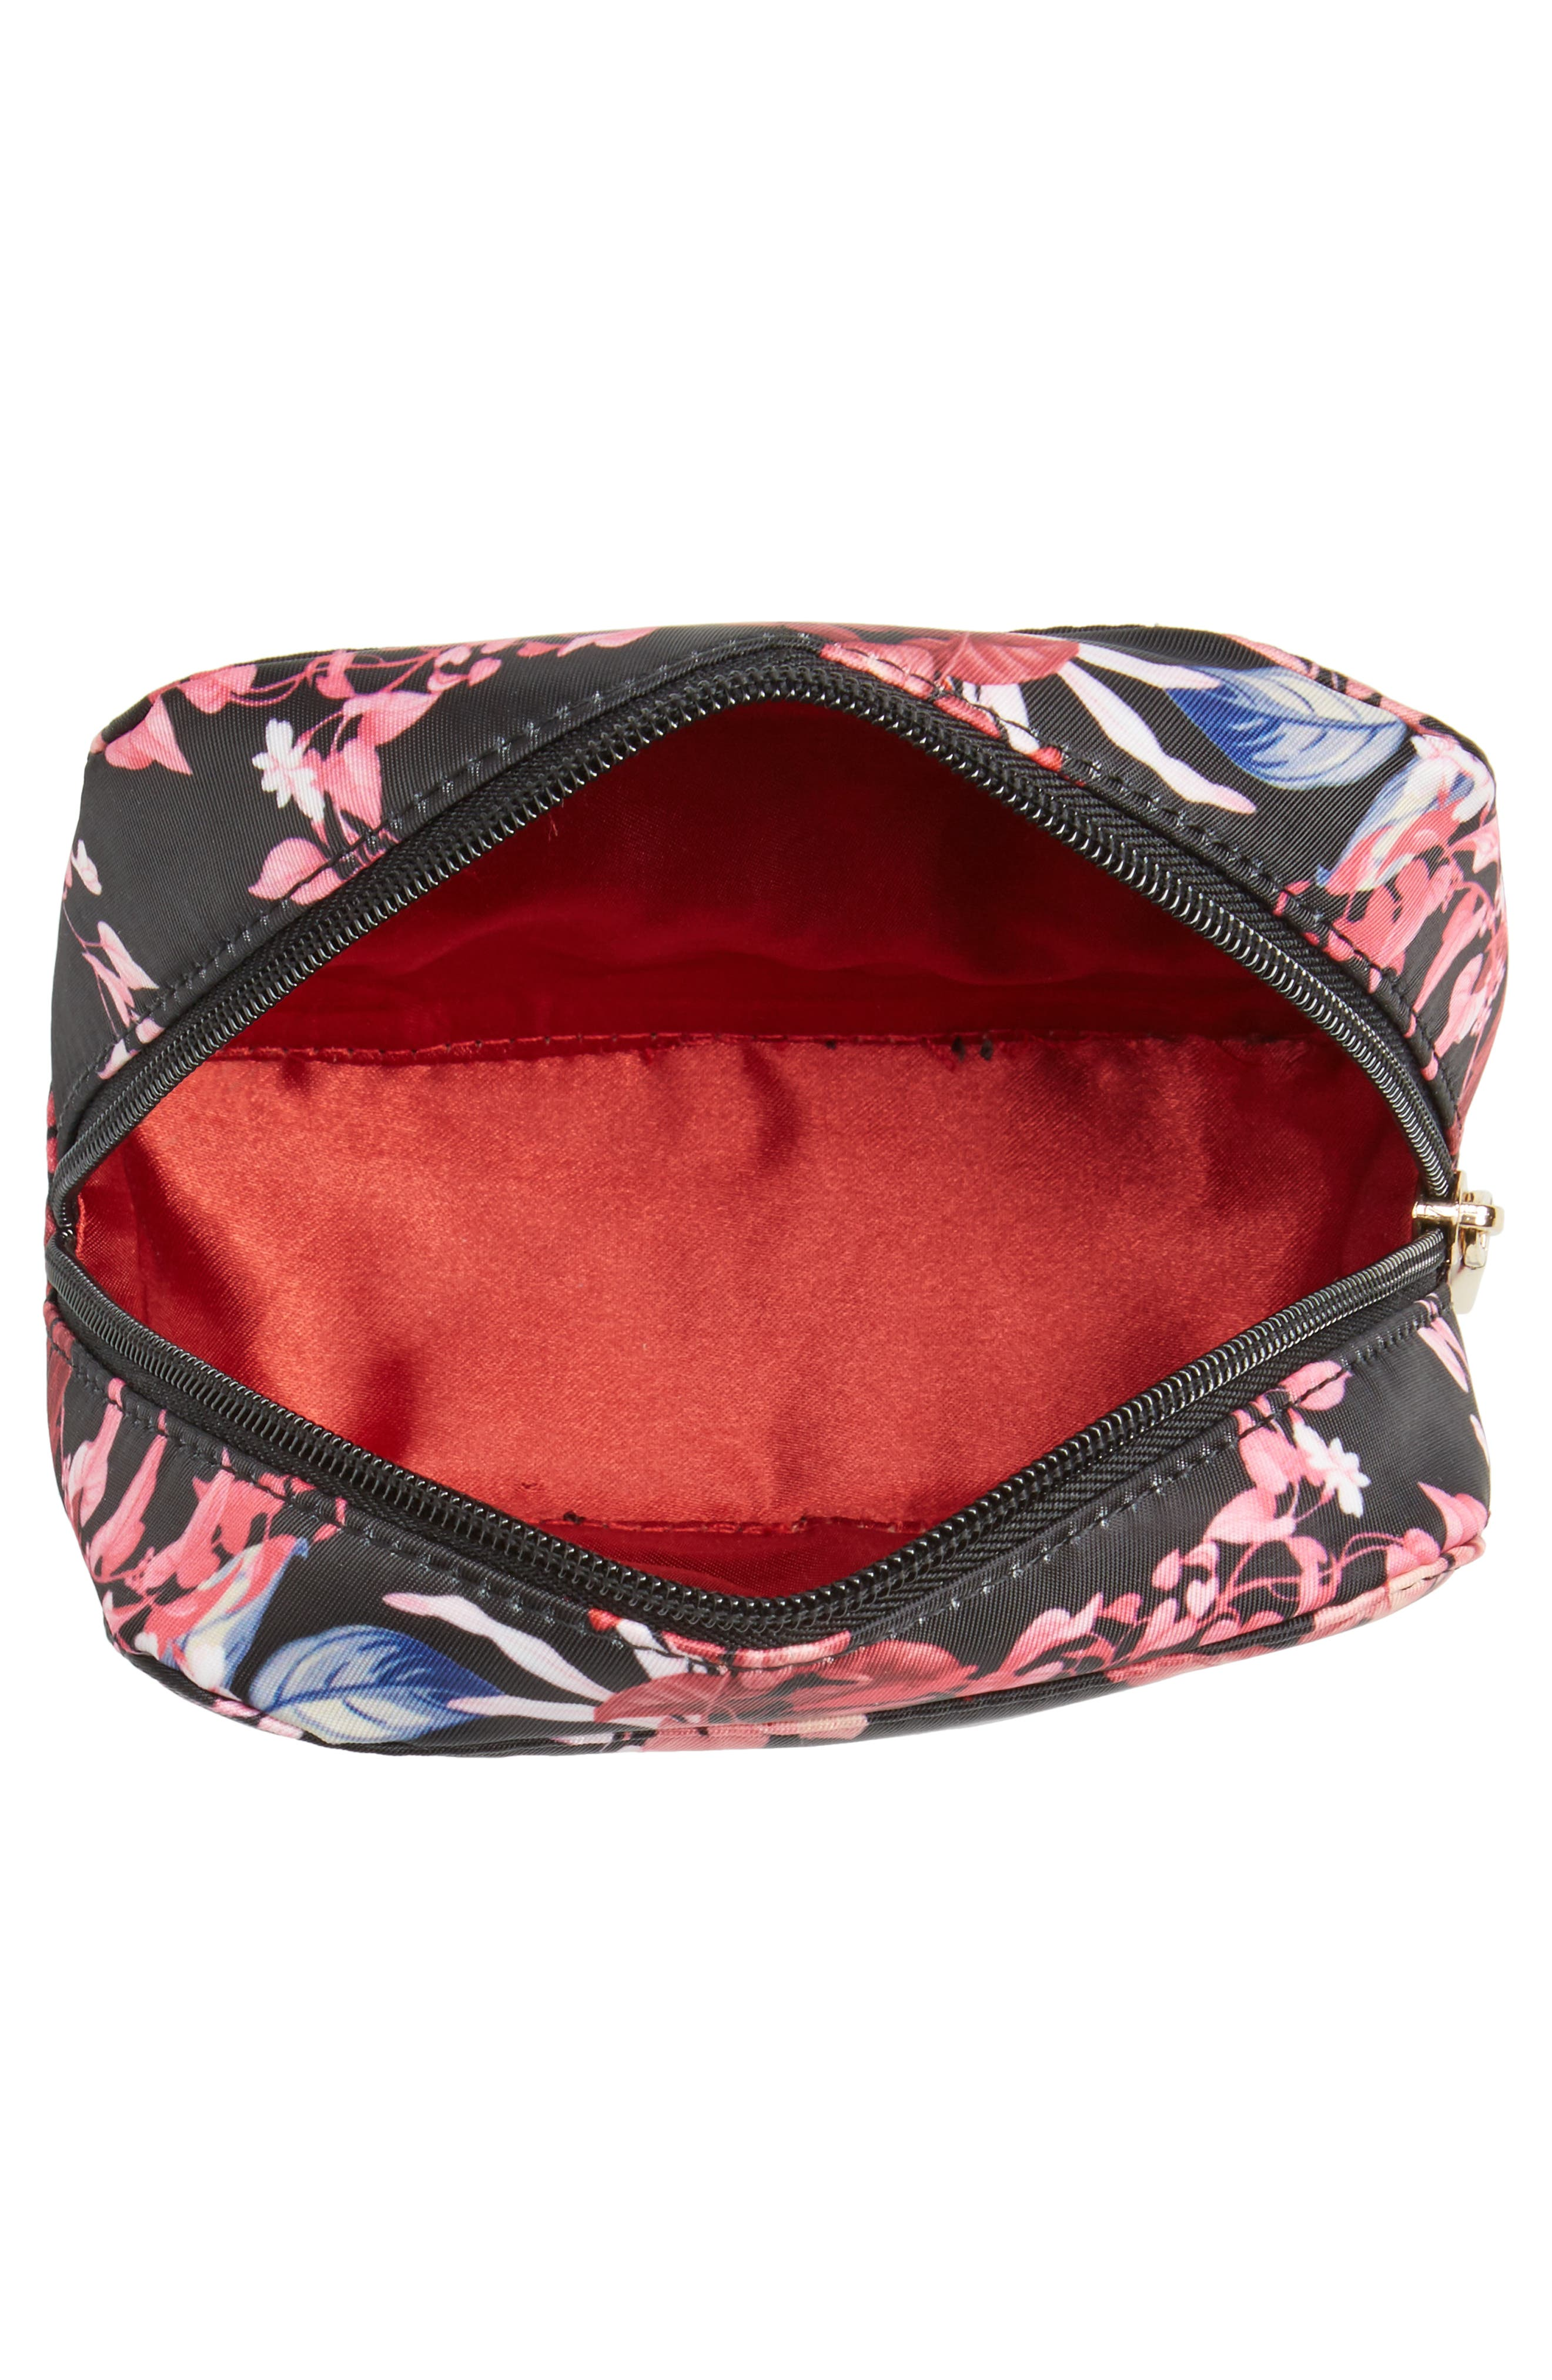 Up in the Air Cosmetics Case & Eye Mask,                             Alternate thumbnail 3, color,                             250